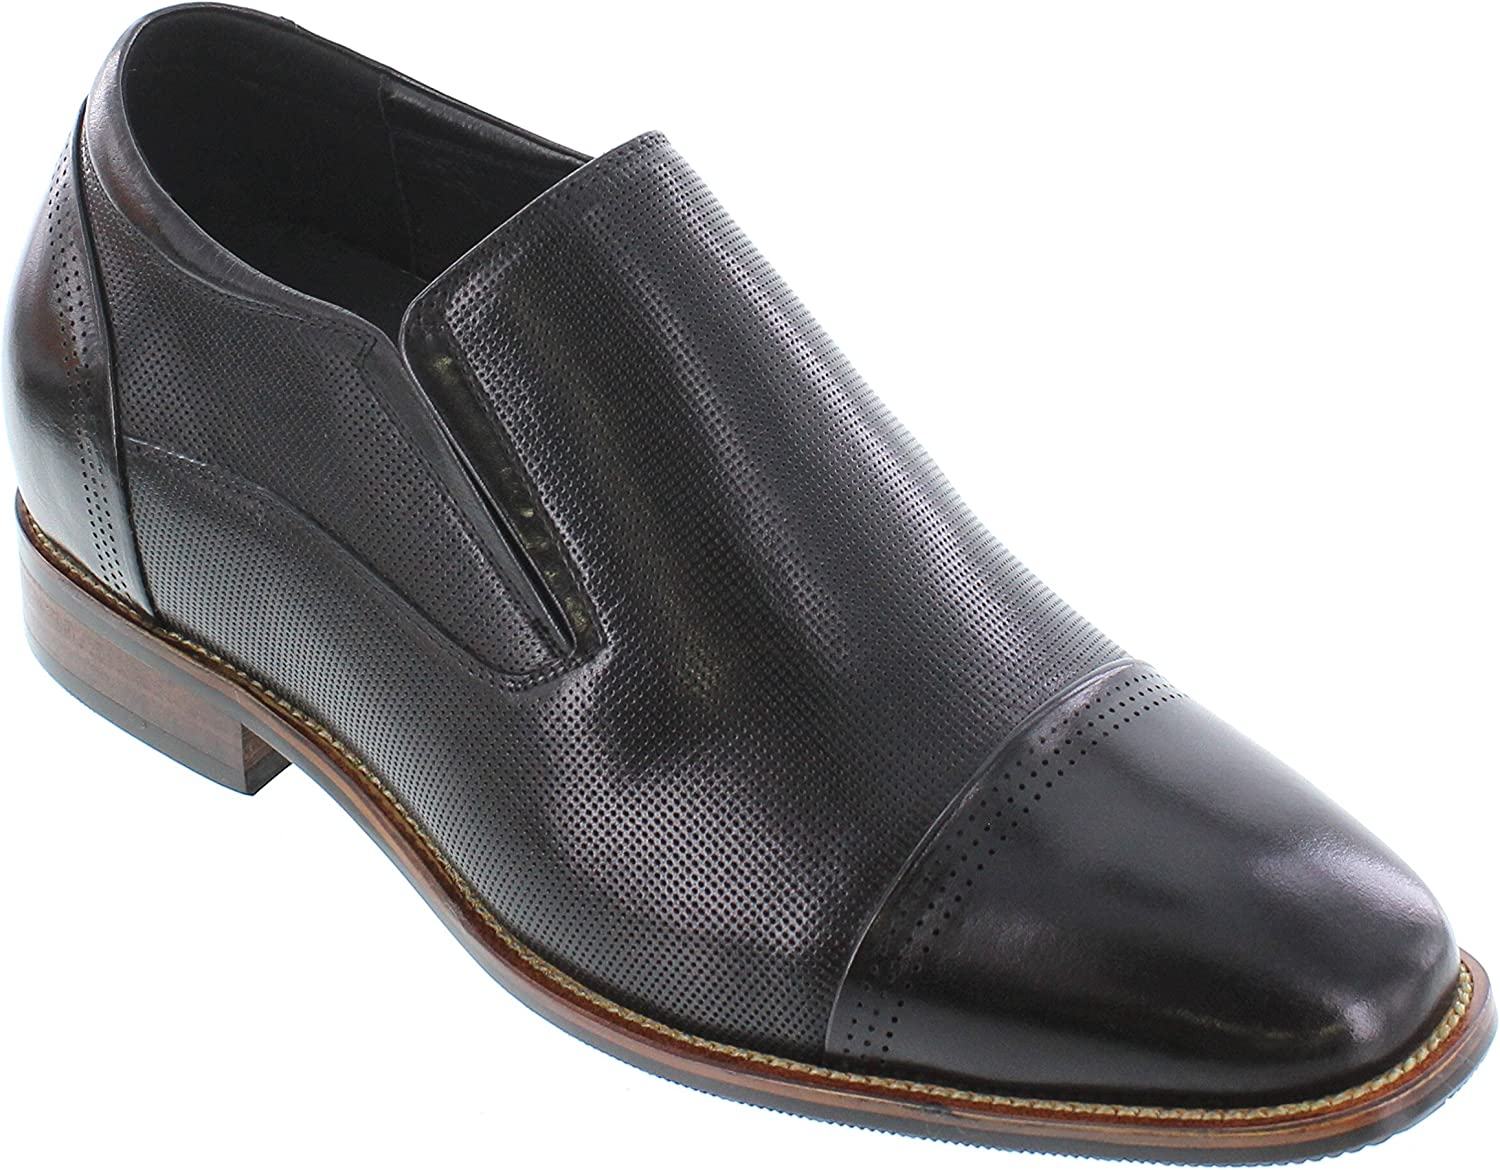 CALTO Men's Invisible Height Increasing Elevator shoes - Black Premium Leather Slip-on Dress Loafers - 3 Inches Taller - Y10657